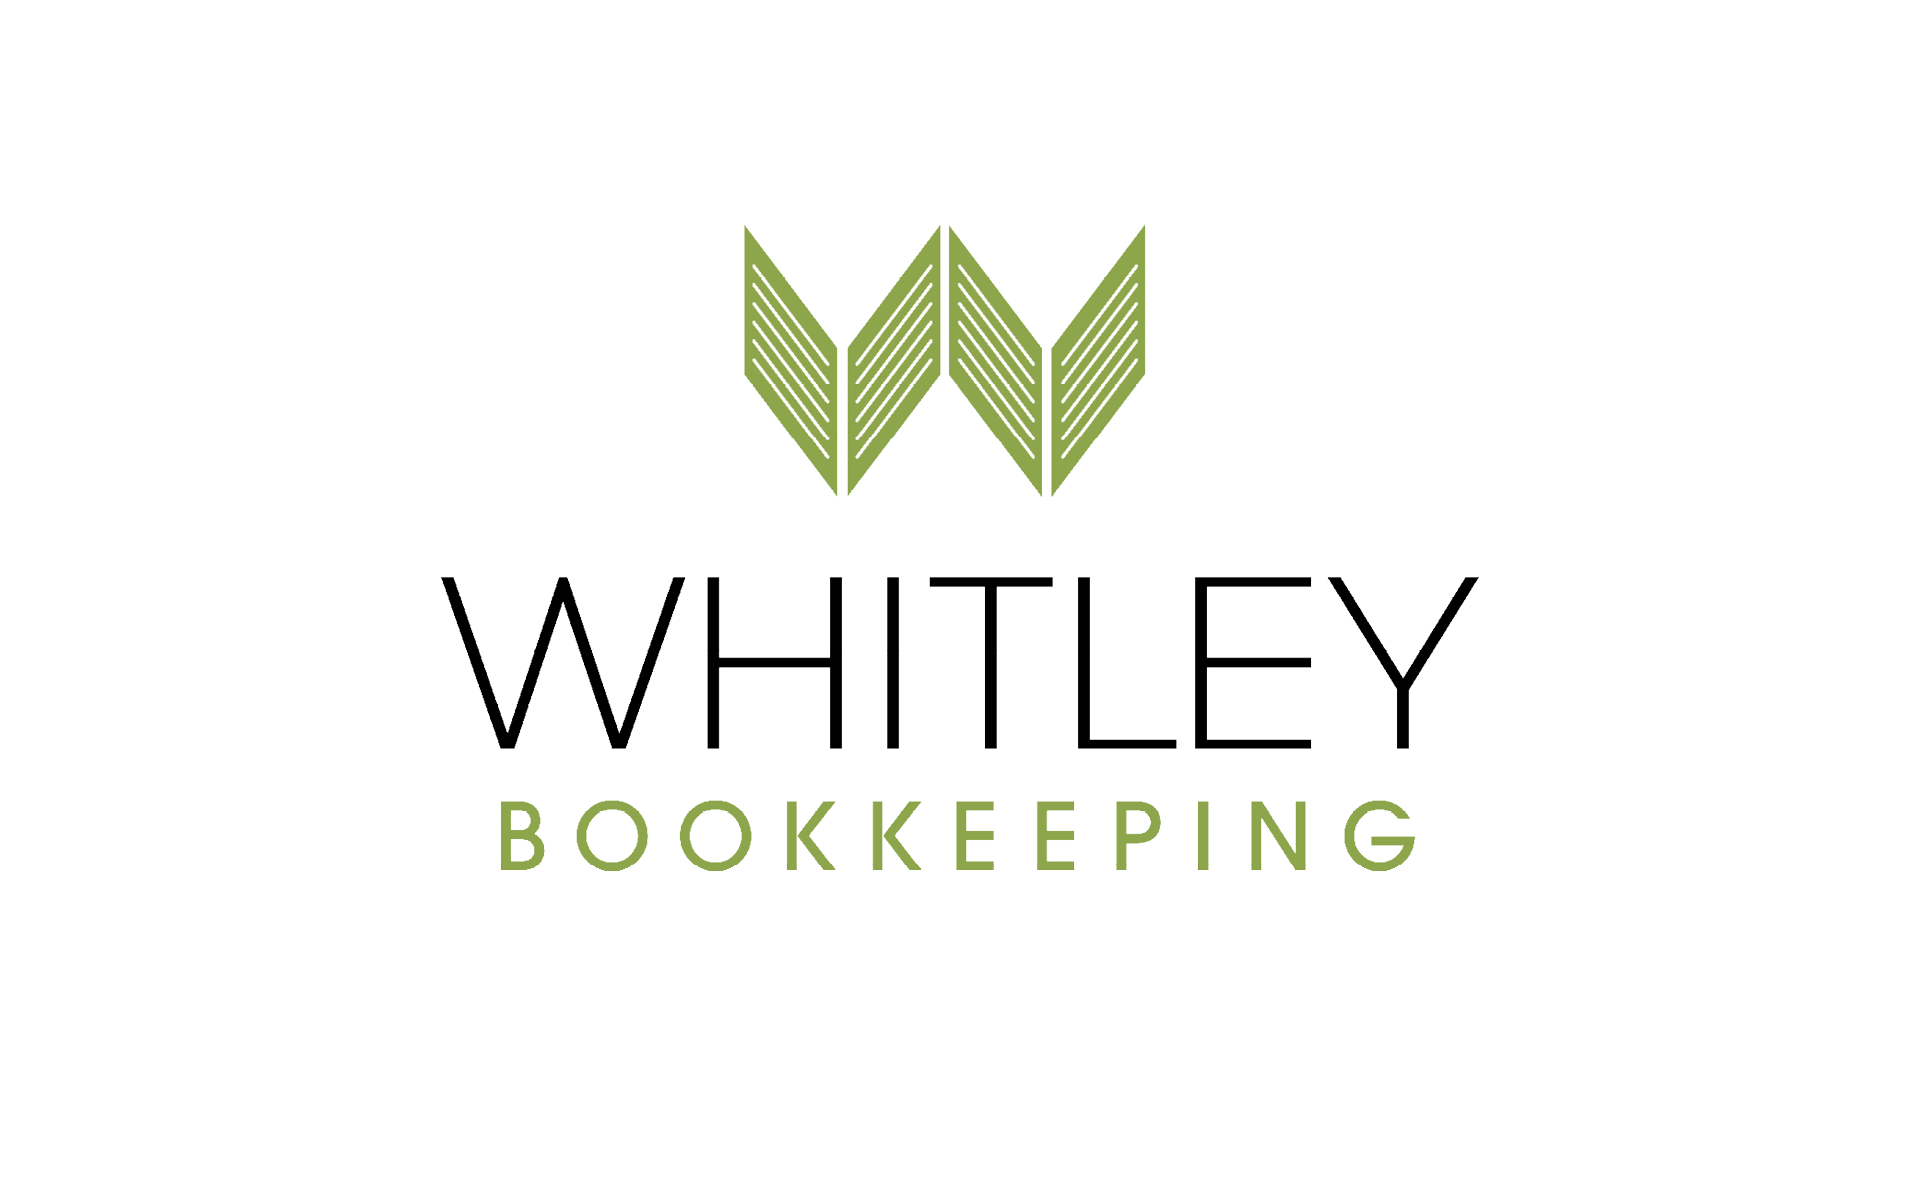 WHITLEY BOOKKEEPING Julianne.whitley@gmail.com | (214) 417-2222